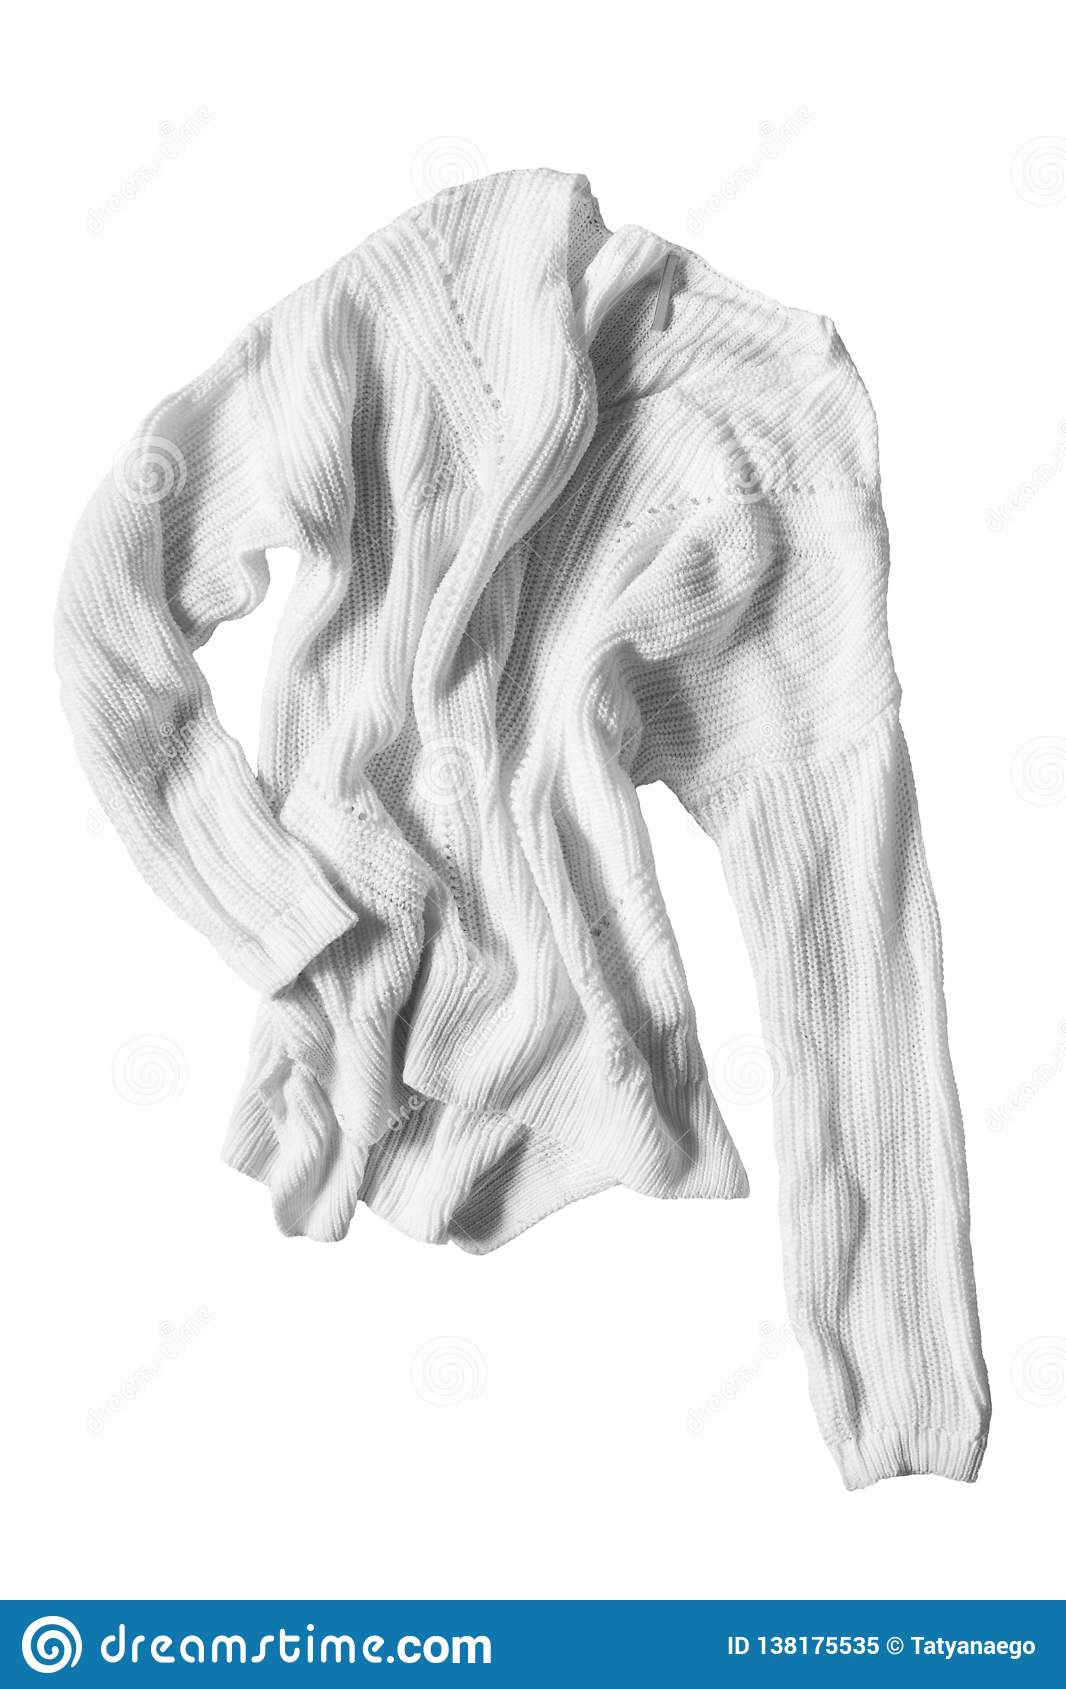 1a14a67e0 Crumpled sweater isolated stock image. Image of clothing - 138175535